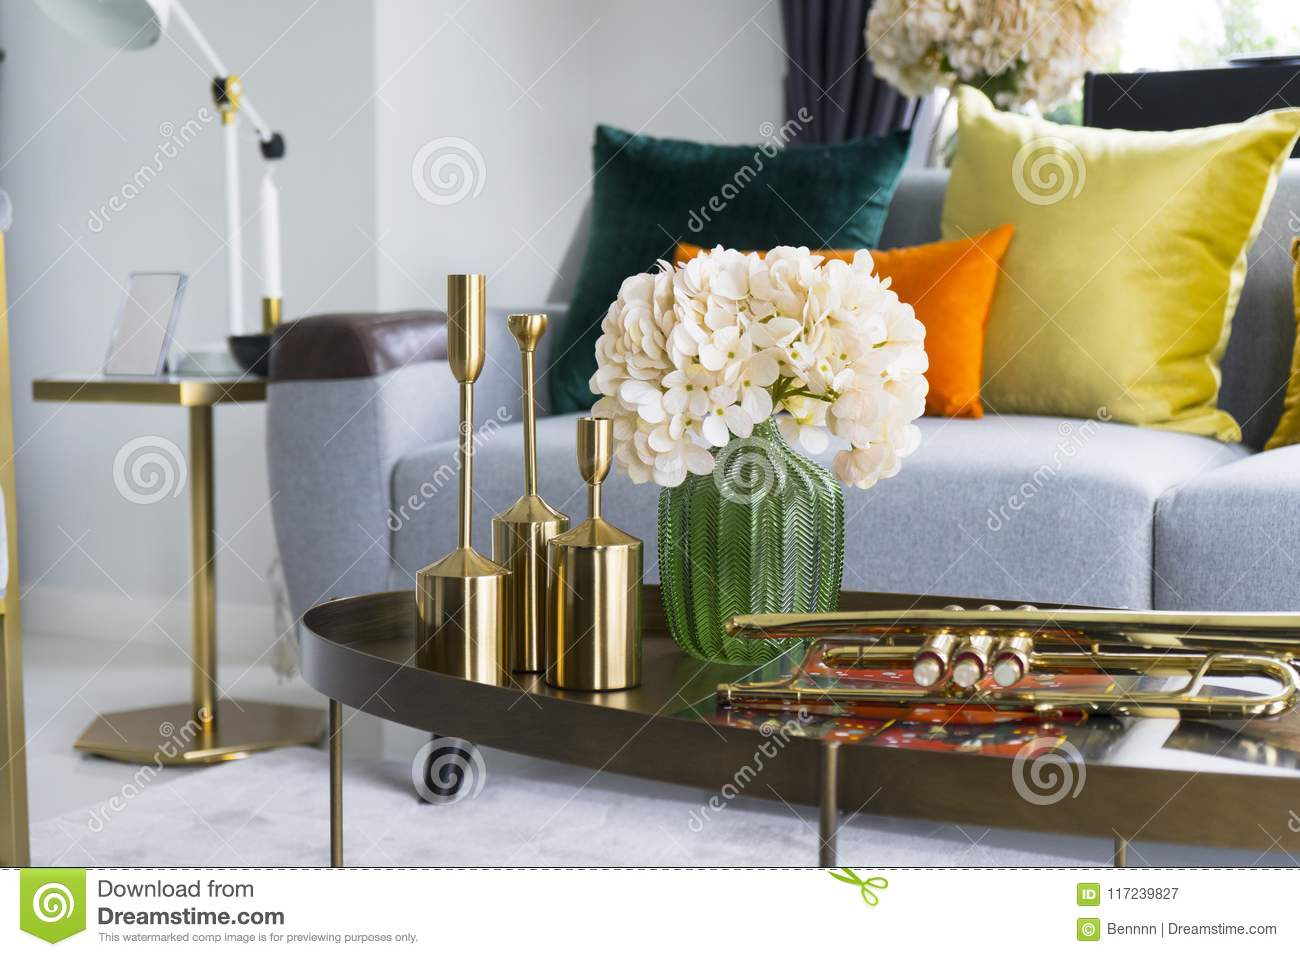 living room flower vases entire furniture sets colorful and stylish with vase stock image